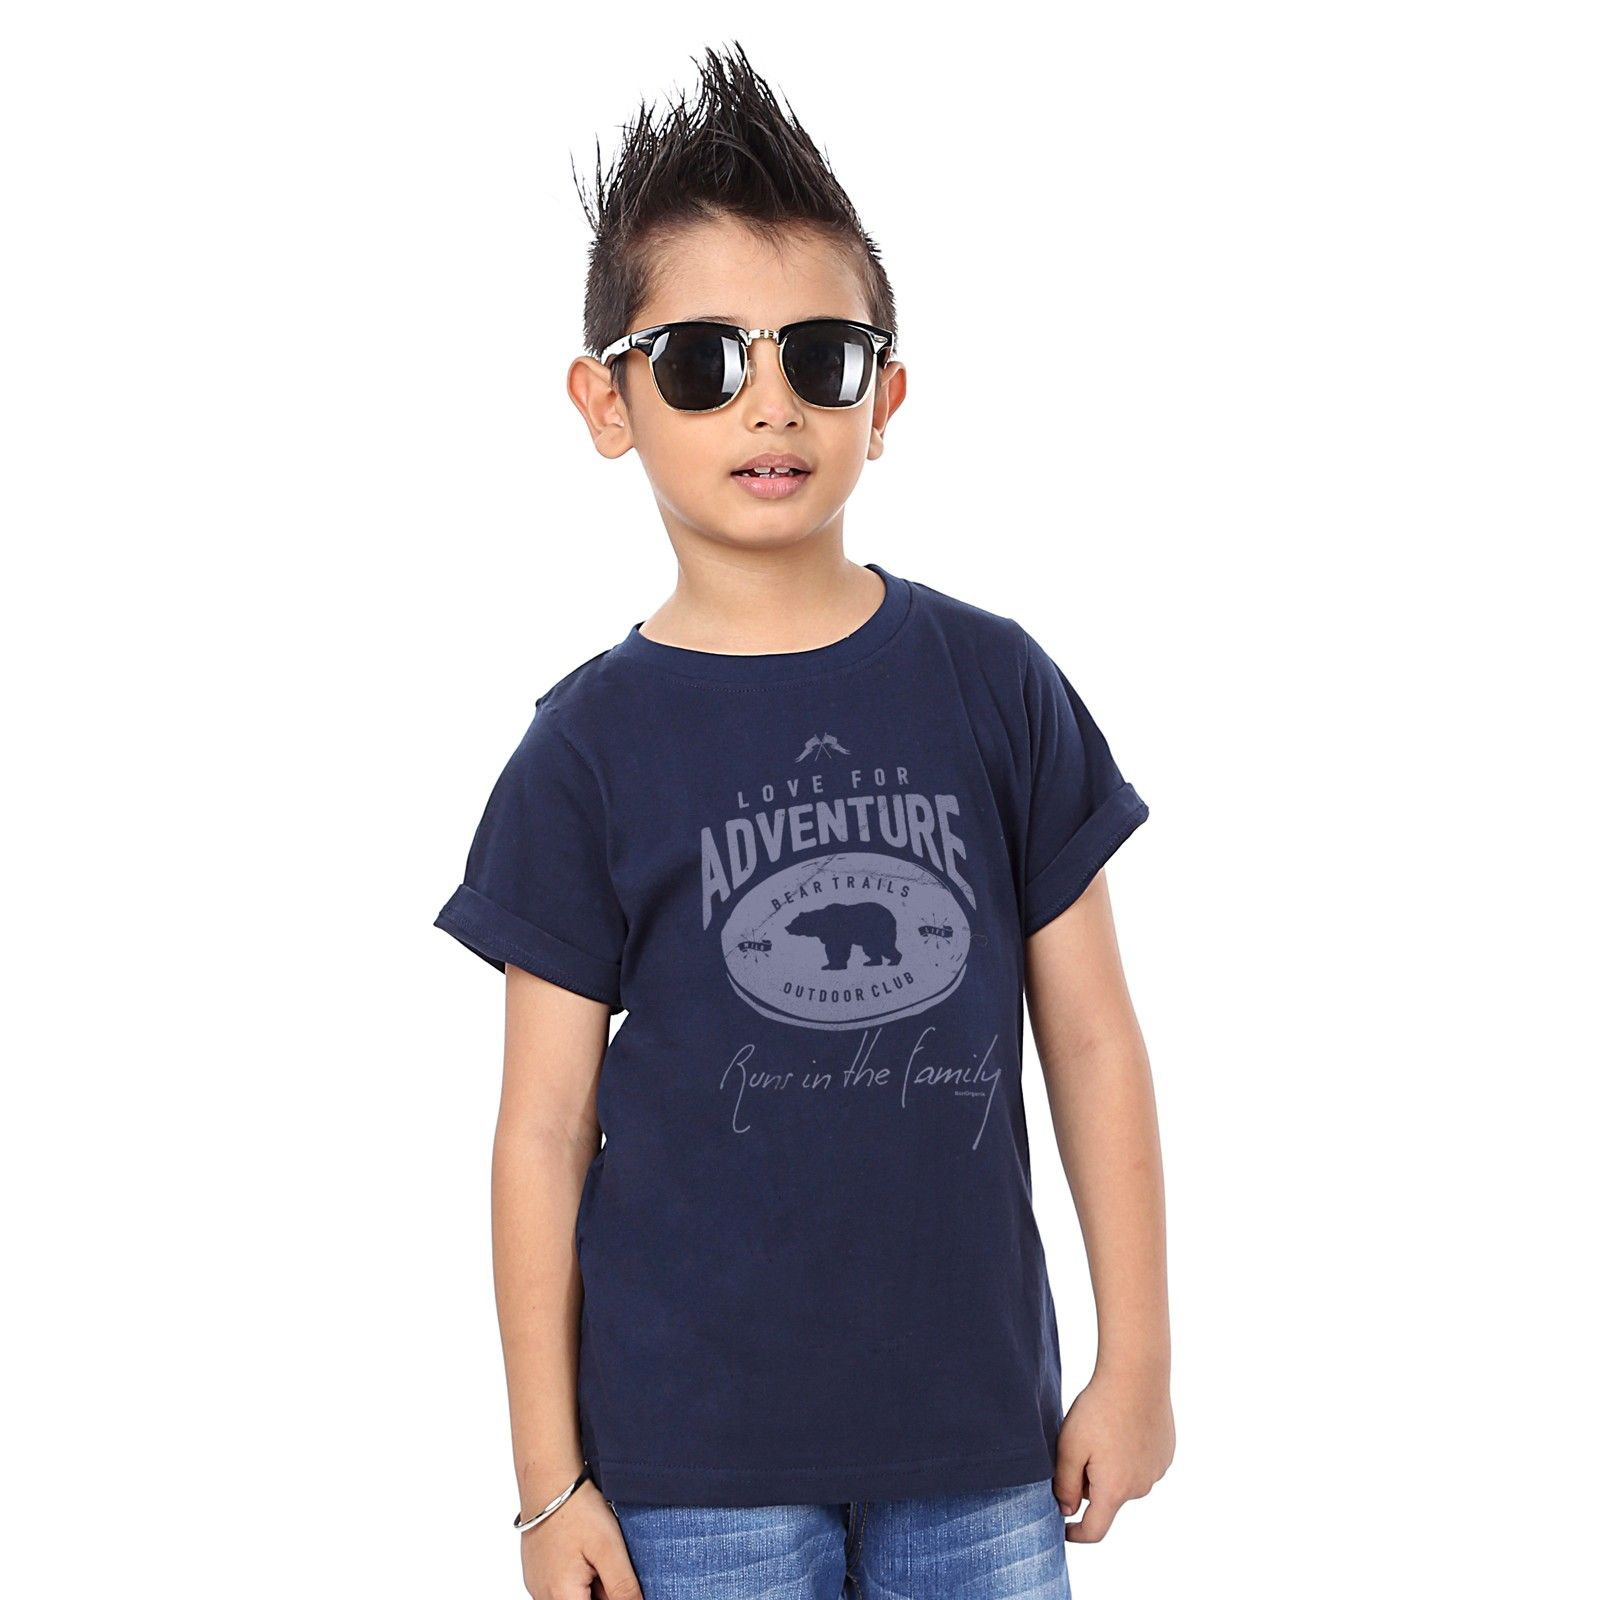 Boy's Love For Adventure Print Navy T-shirt - BonOrganik